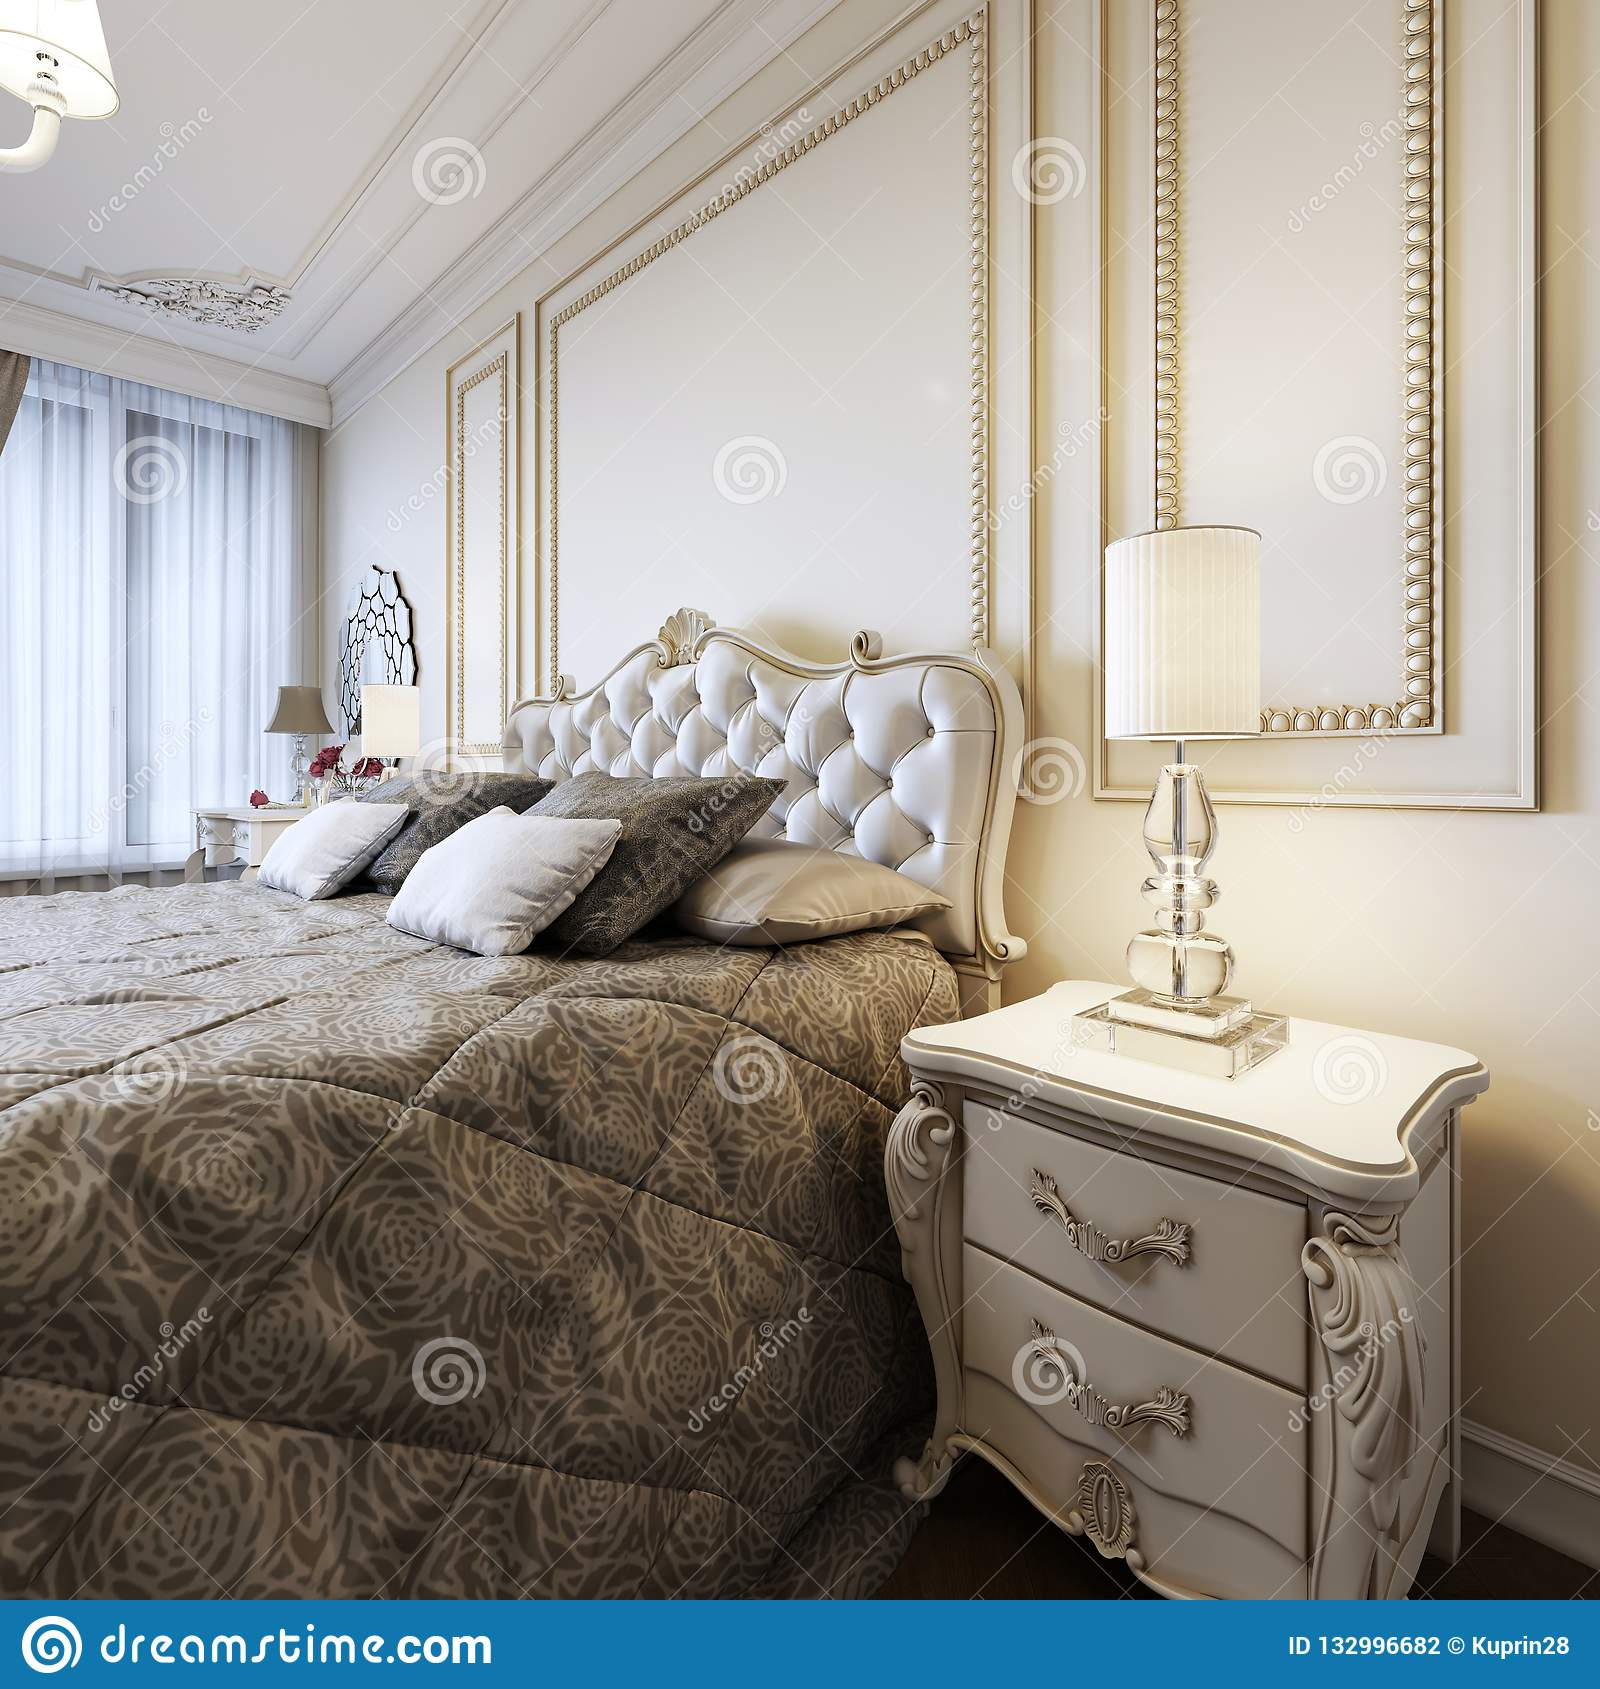 Classic Bed With Bedside Tables And Night Lamps In Art Deco Bedroom Style Stock Illustration Illustration Of Bedside Decor 132996682